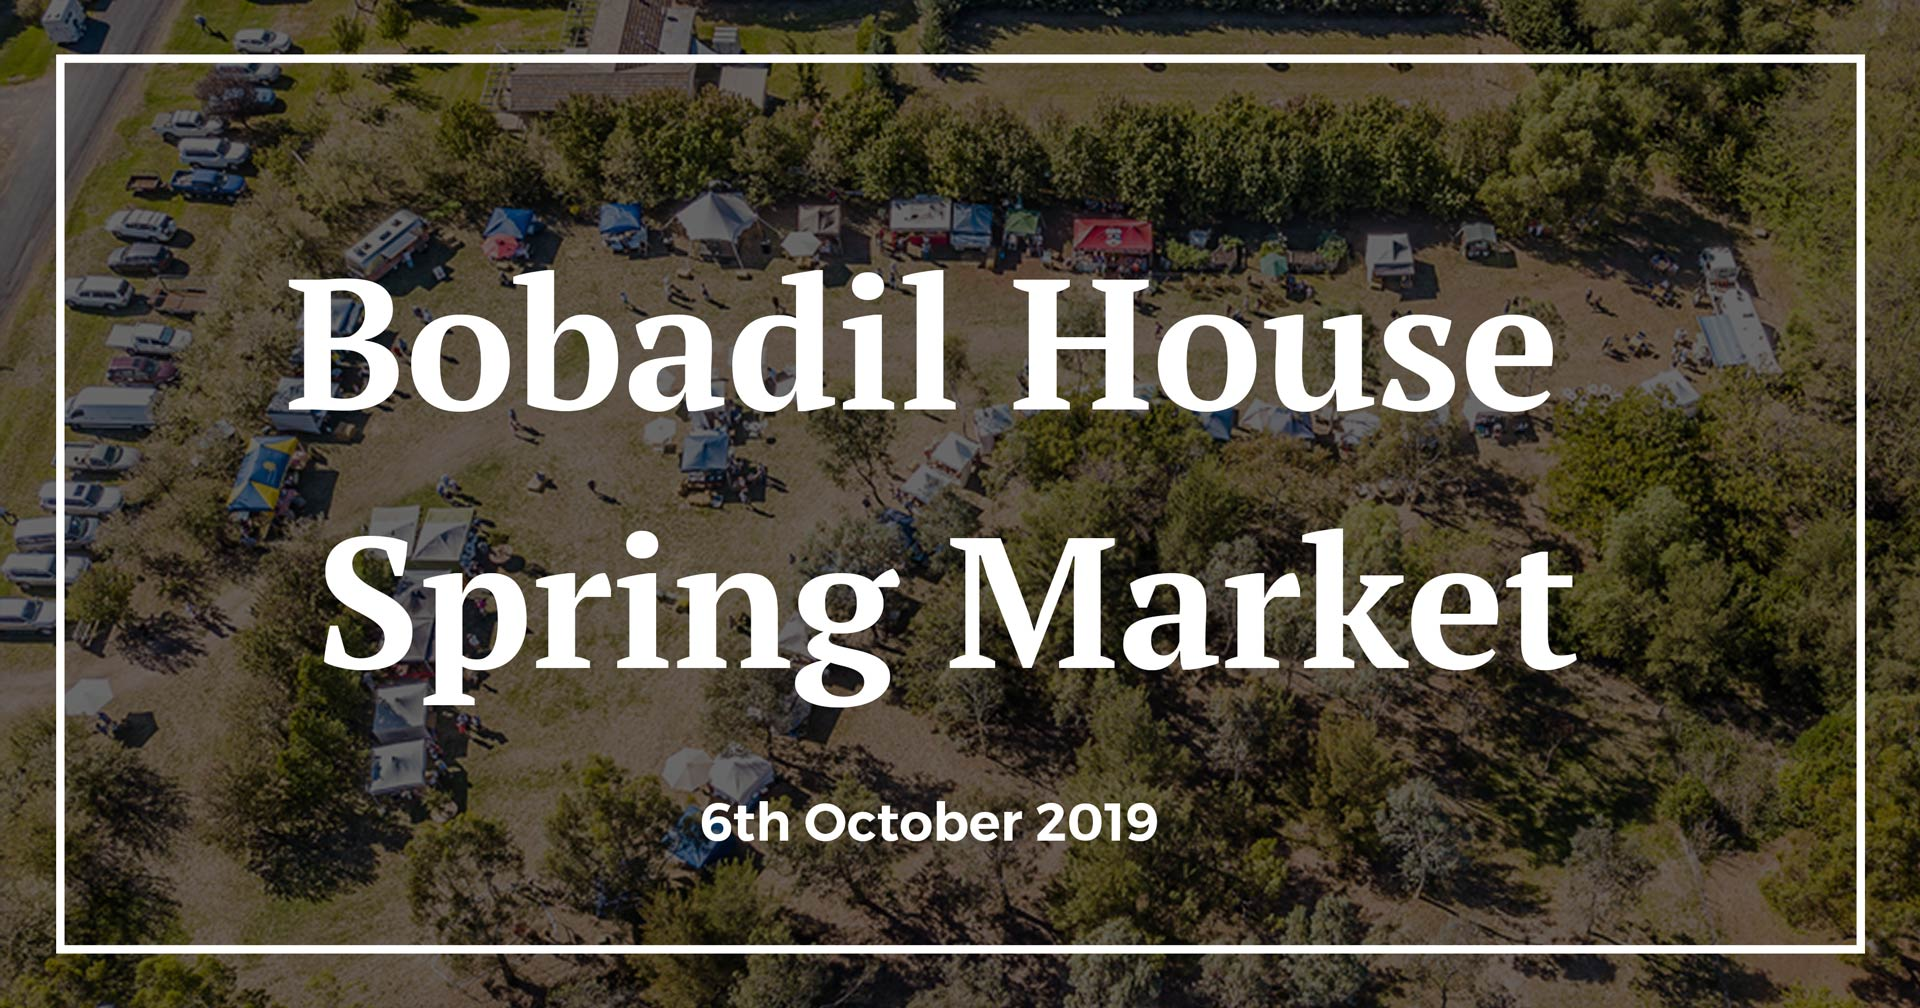 BOBADIL HOUSE SPRING MARKETS - Upper Hunter Festival and Events.